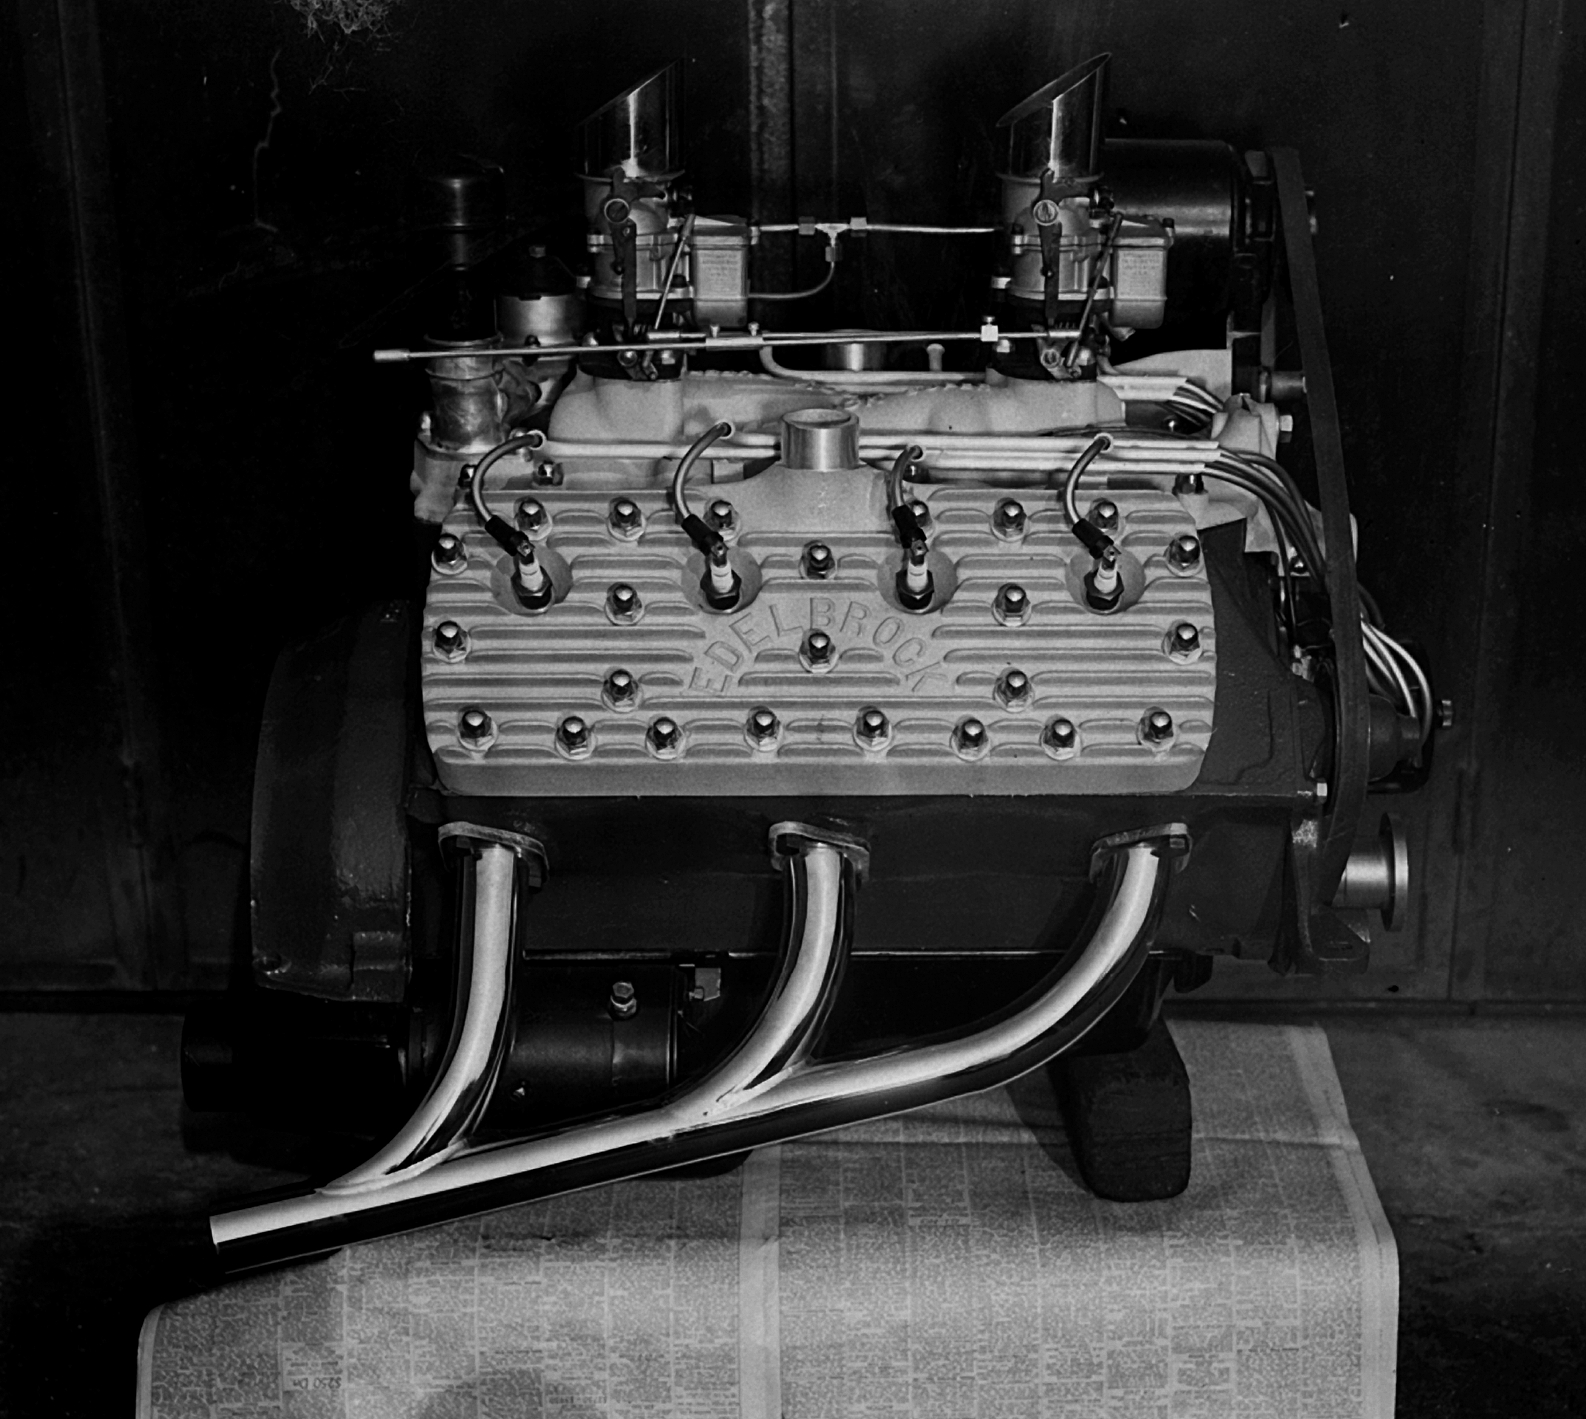 Ford Flathead V8: The Original Hot Rod Engine - OnAllCylinders